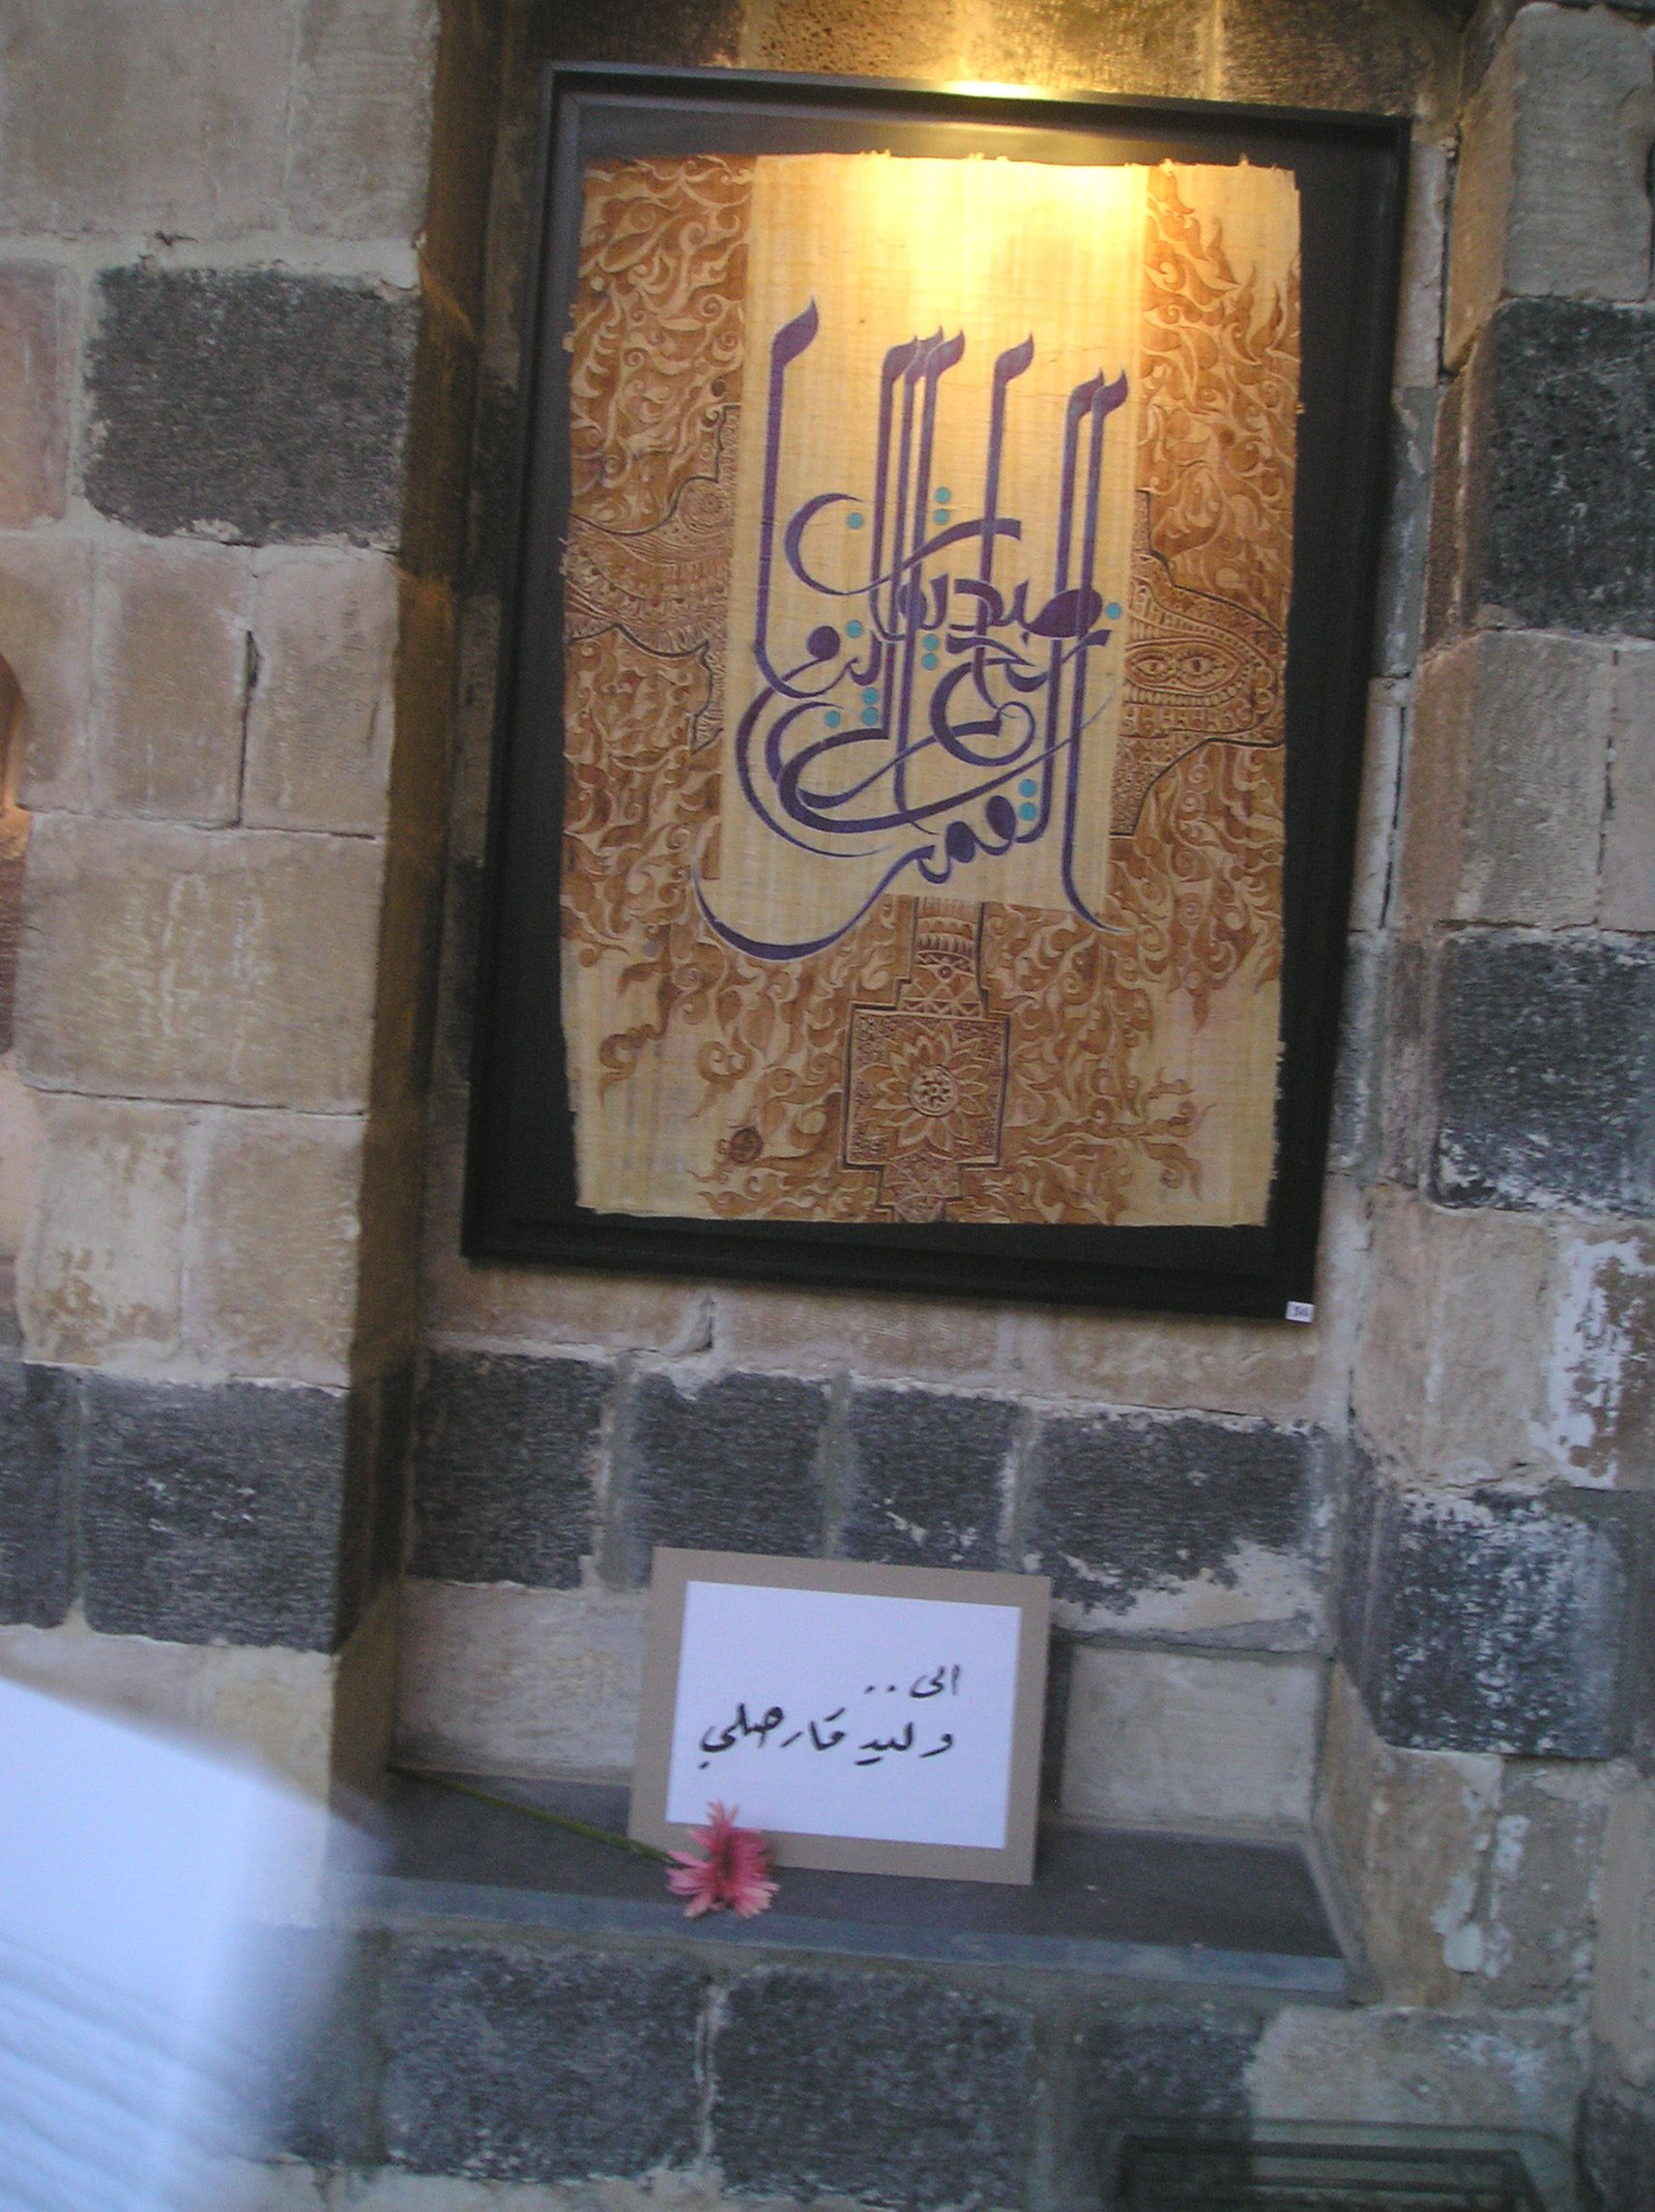 Imad's exhibition in an old house in Bab Tuma Damascus, this painting is dedicated to the artist Walid Karisli.